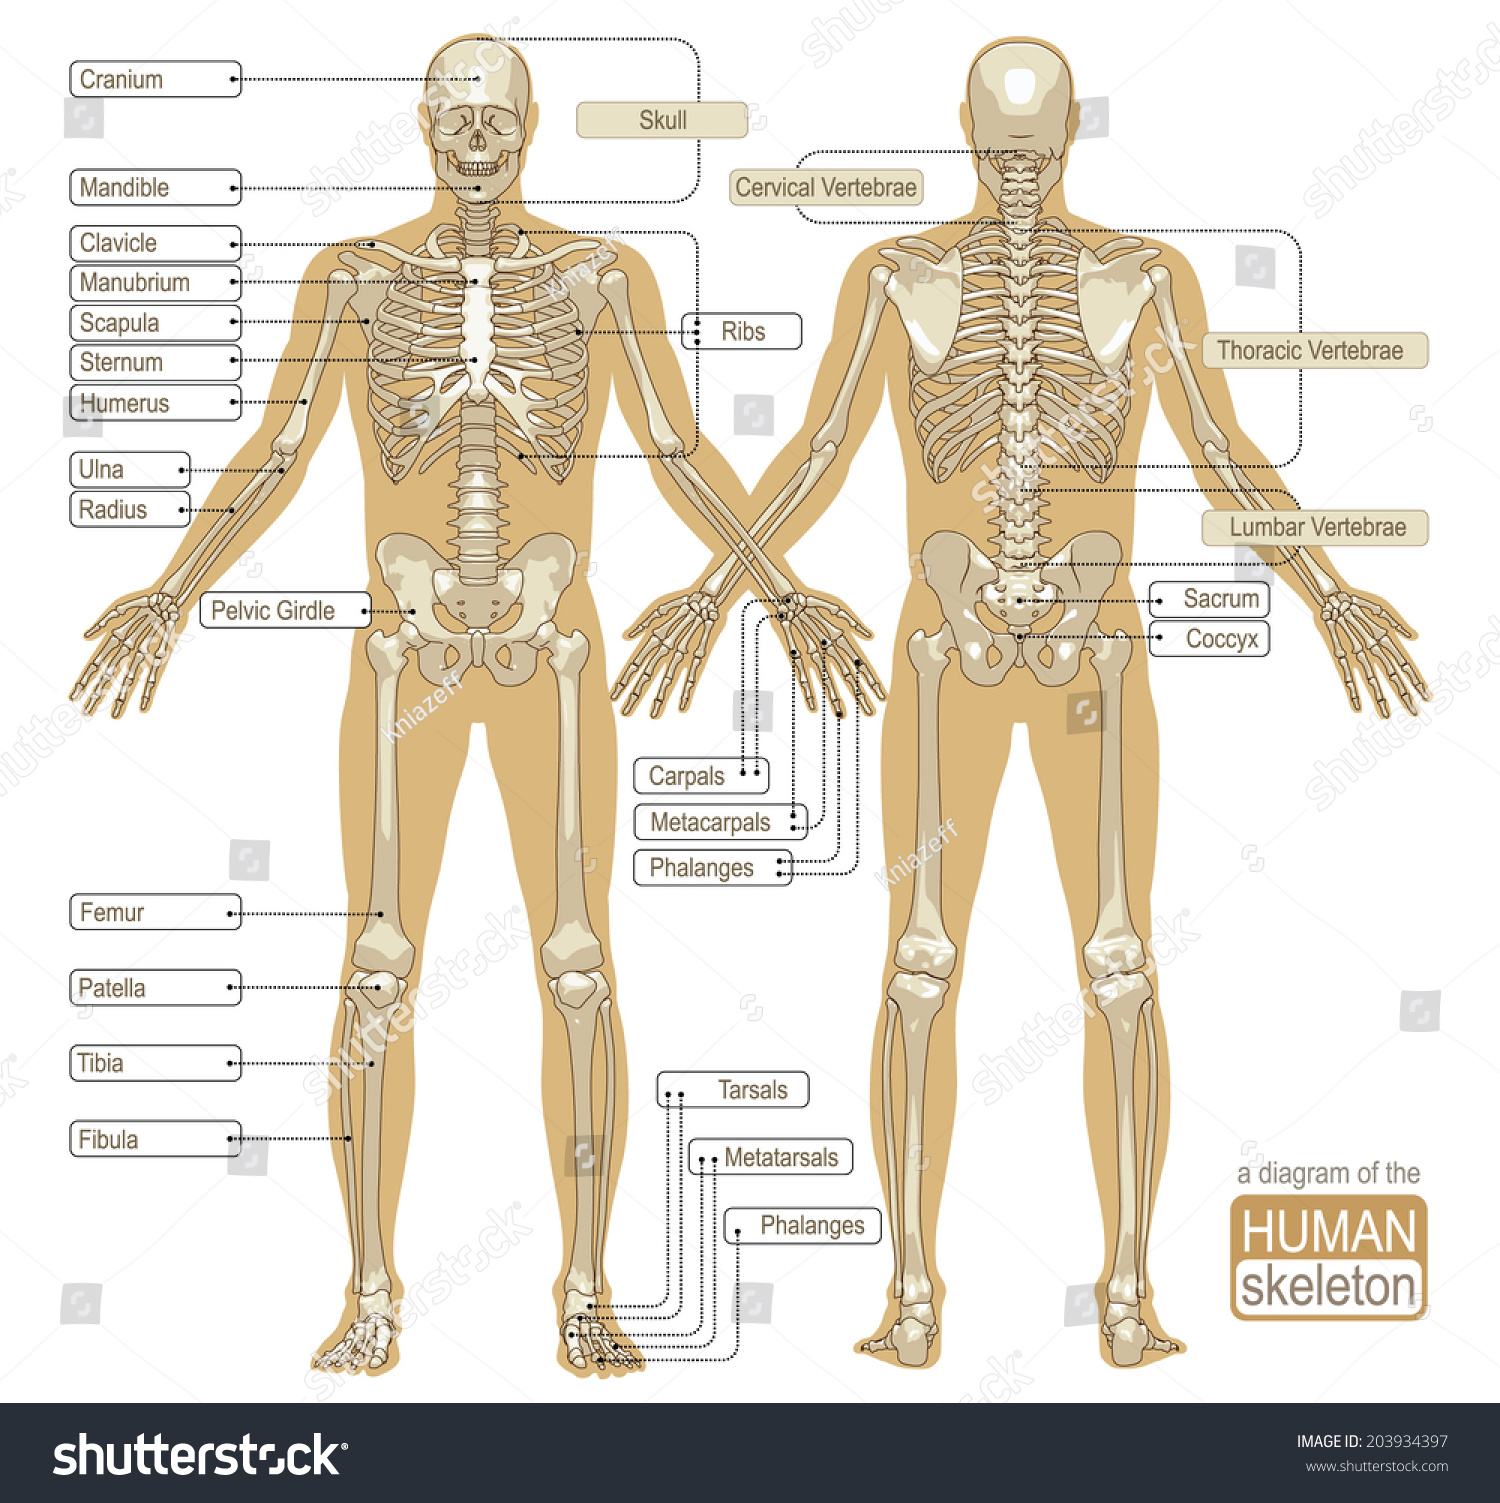 Diagram Human Skeleton Main Parts Skeletal Stock Vector